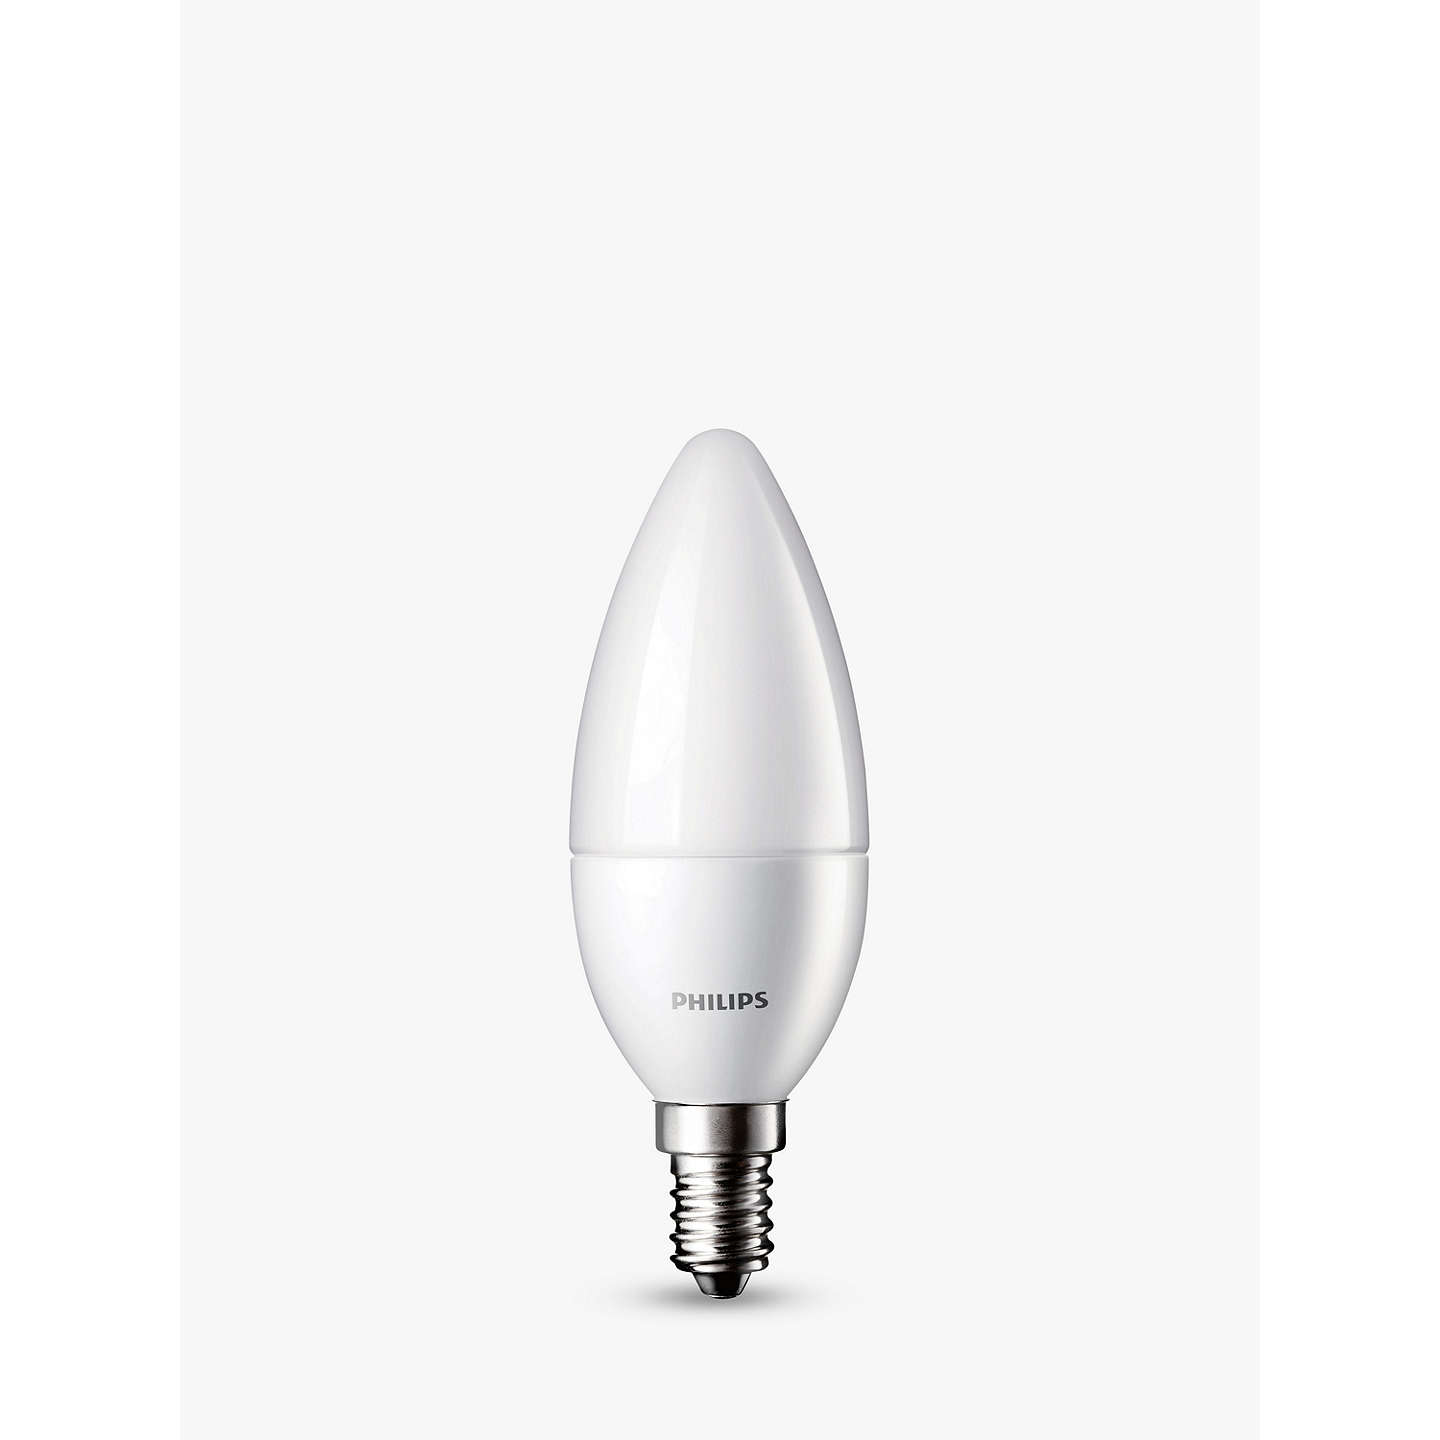 BuyPhilips 5.5W SES LED Candle Light Bulb, Frosted Online at johnlewis.com